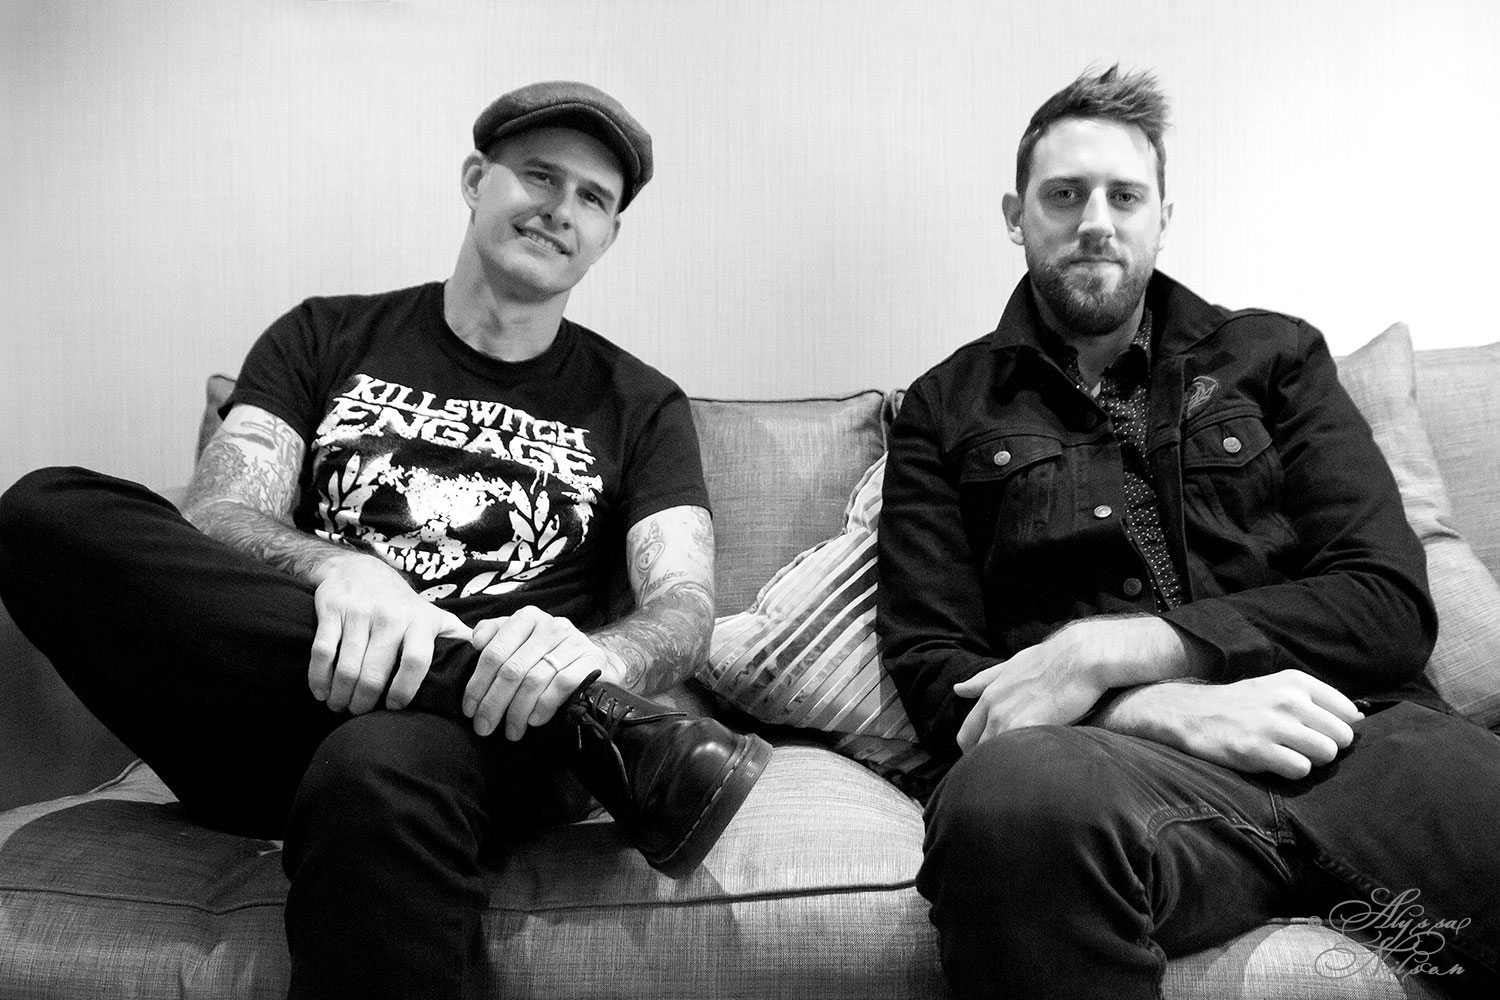 Al Barr and Tim Brennan from Dropkick Murphys, London, January 2017. Photo: Alyssa Nilsen